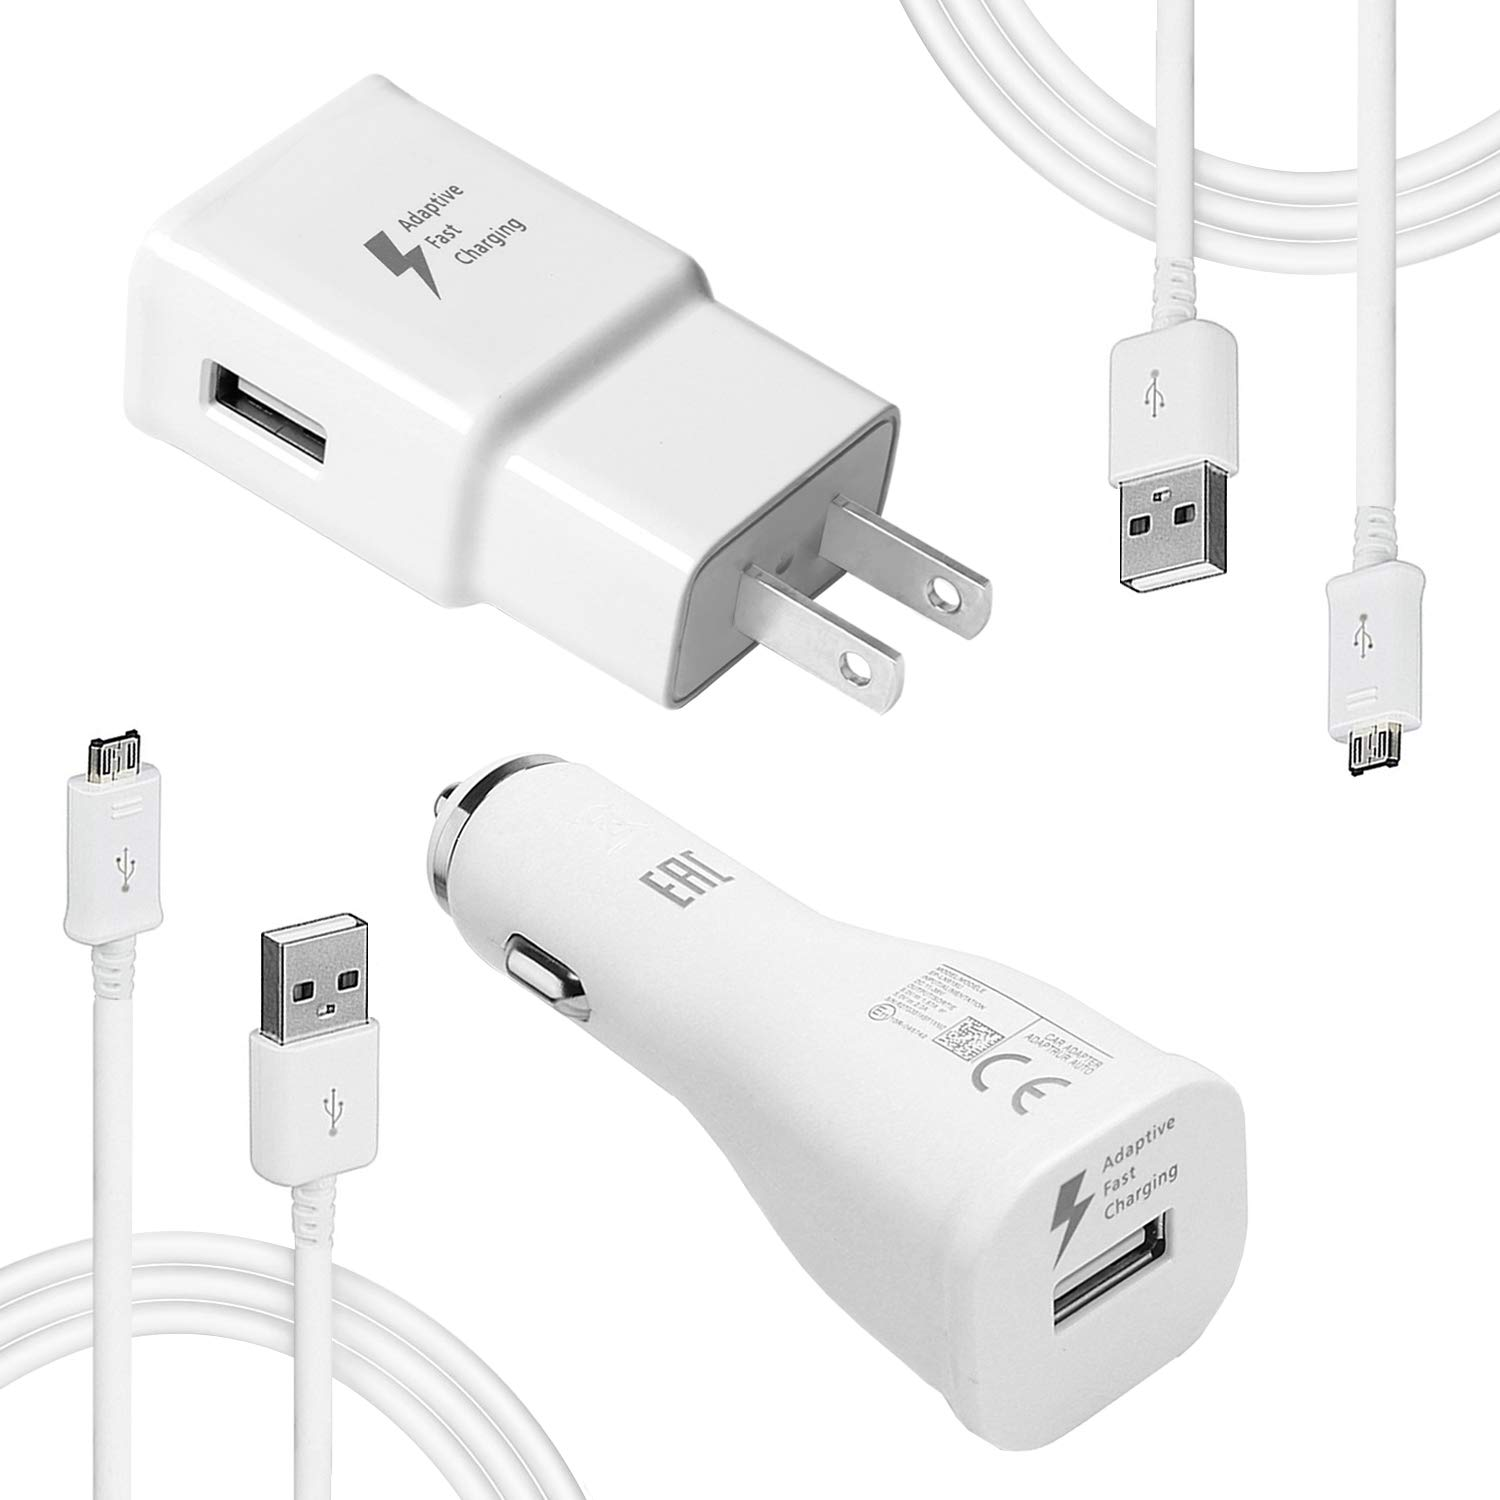 MBLAI Fast Charge Adaptive Fast Charger Kit for Samsung Galaxy S7/S7 Edge/S6/Note5/4 /S3,USB 2.0 Fast Charging Kit True Digital Adaptive Fast Charging (S7 Fast Charger Set) by MBLAI